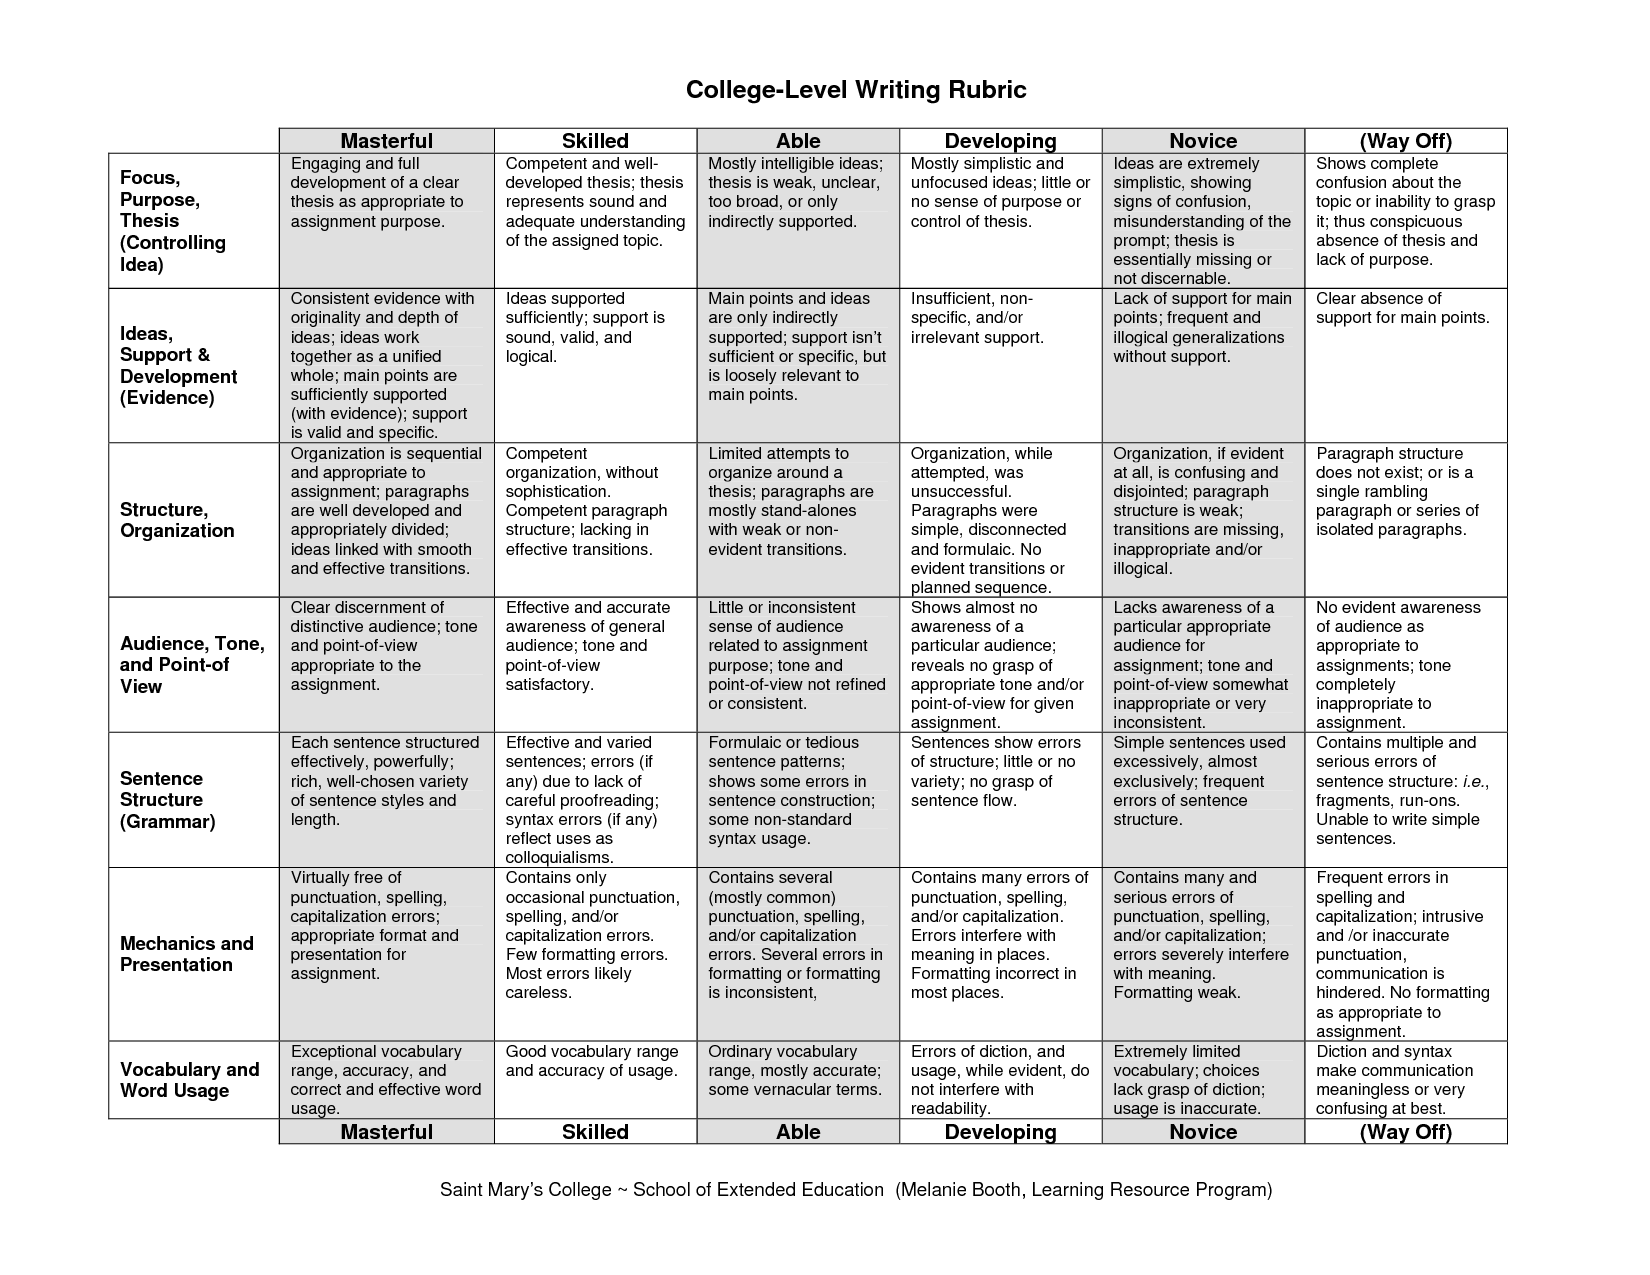 rubric for graduate research paper Rubric for research paper evaluation research paper conclusion: rubric for website evaluation author: scott a mandia.